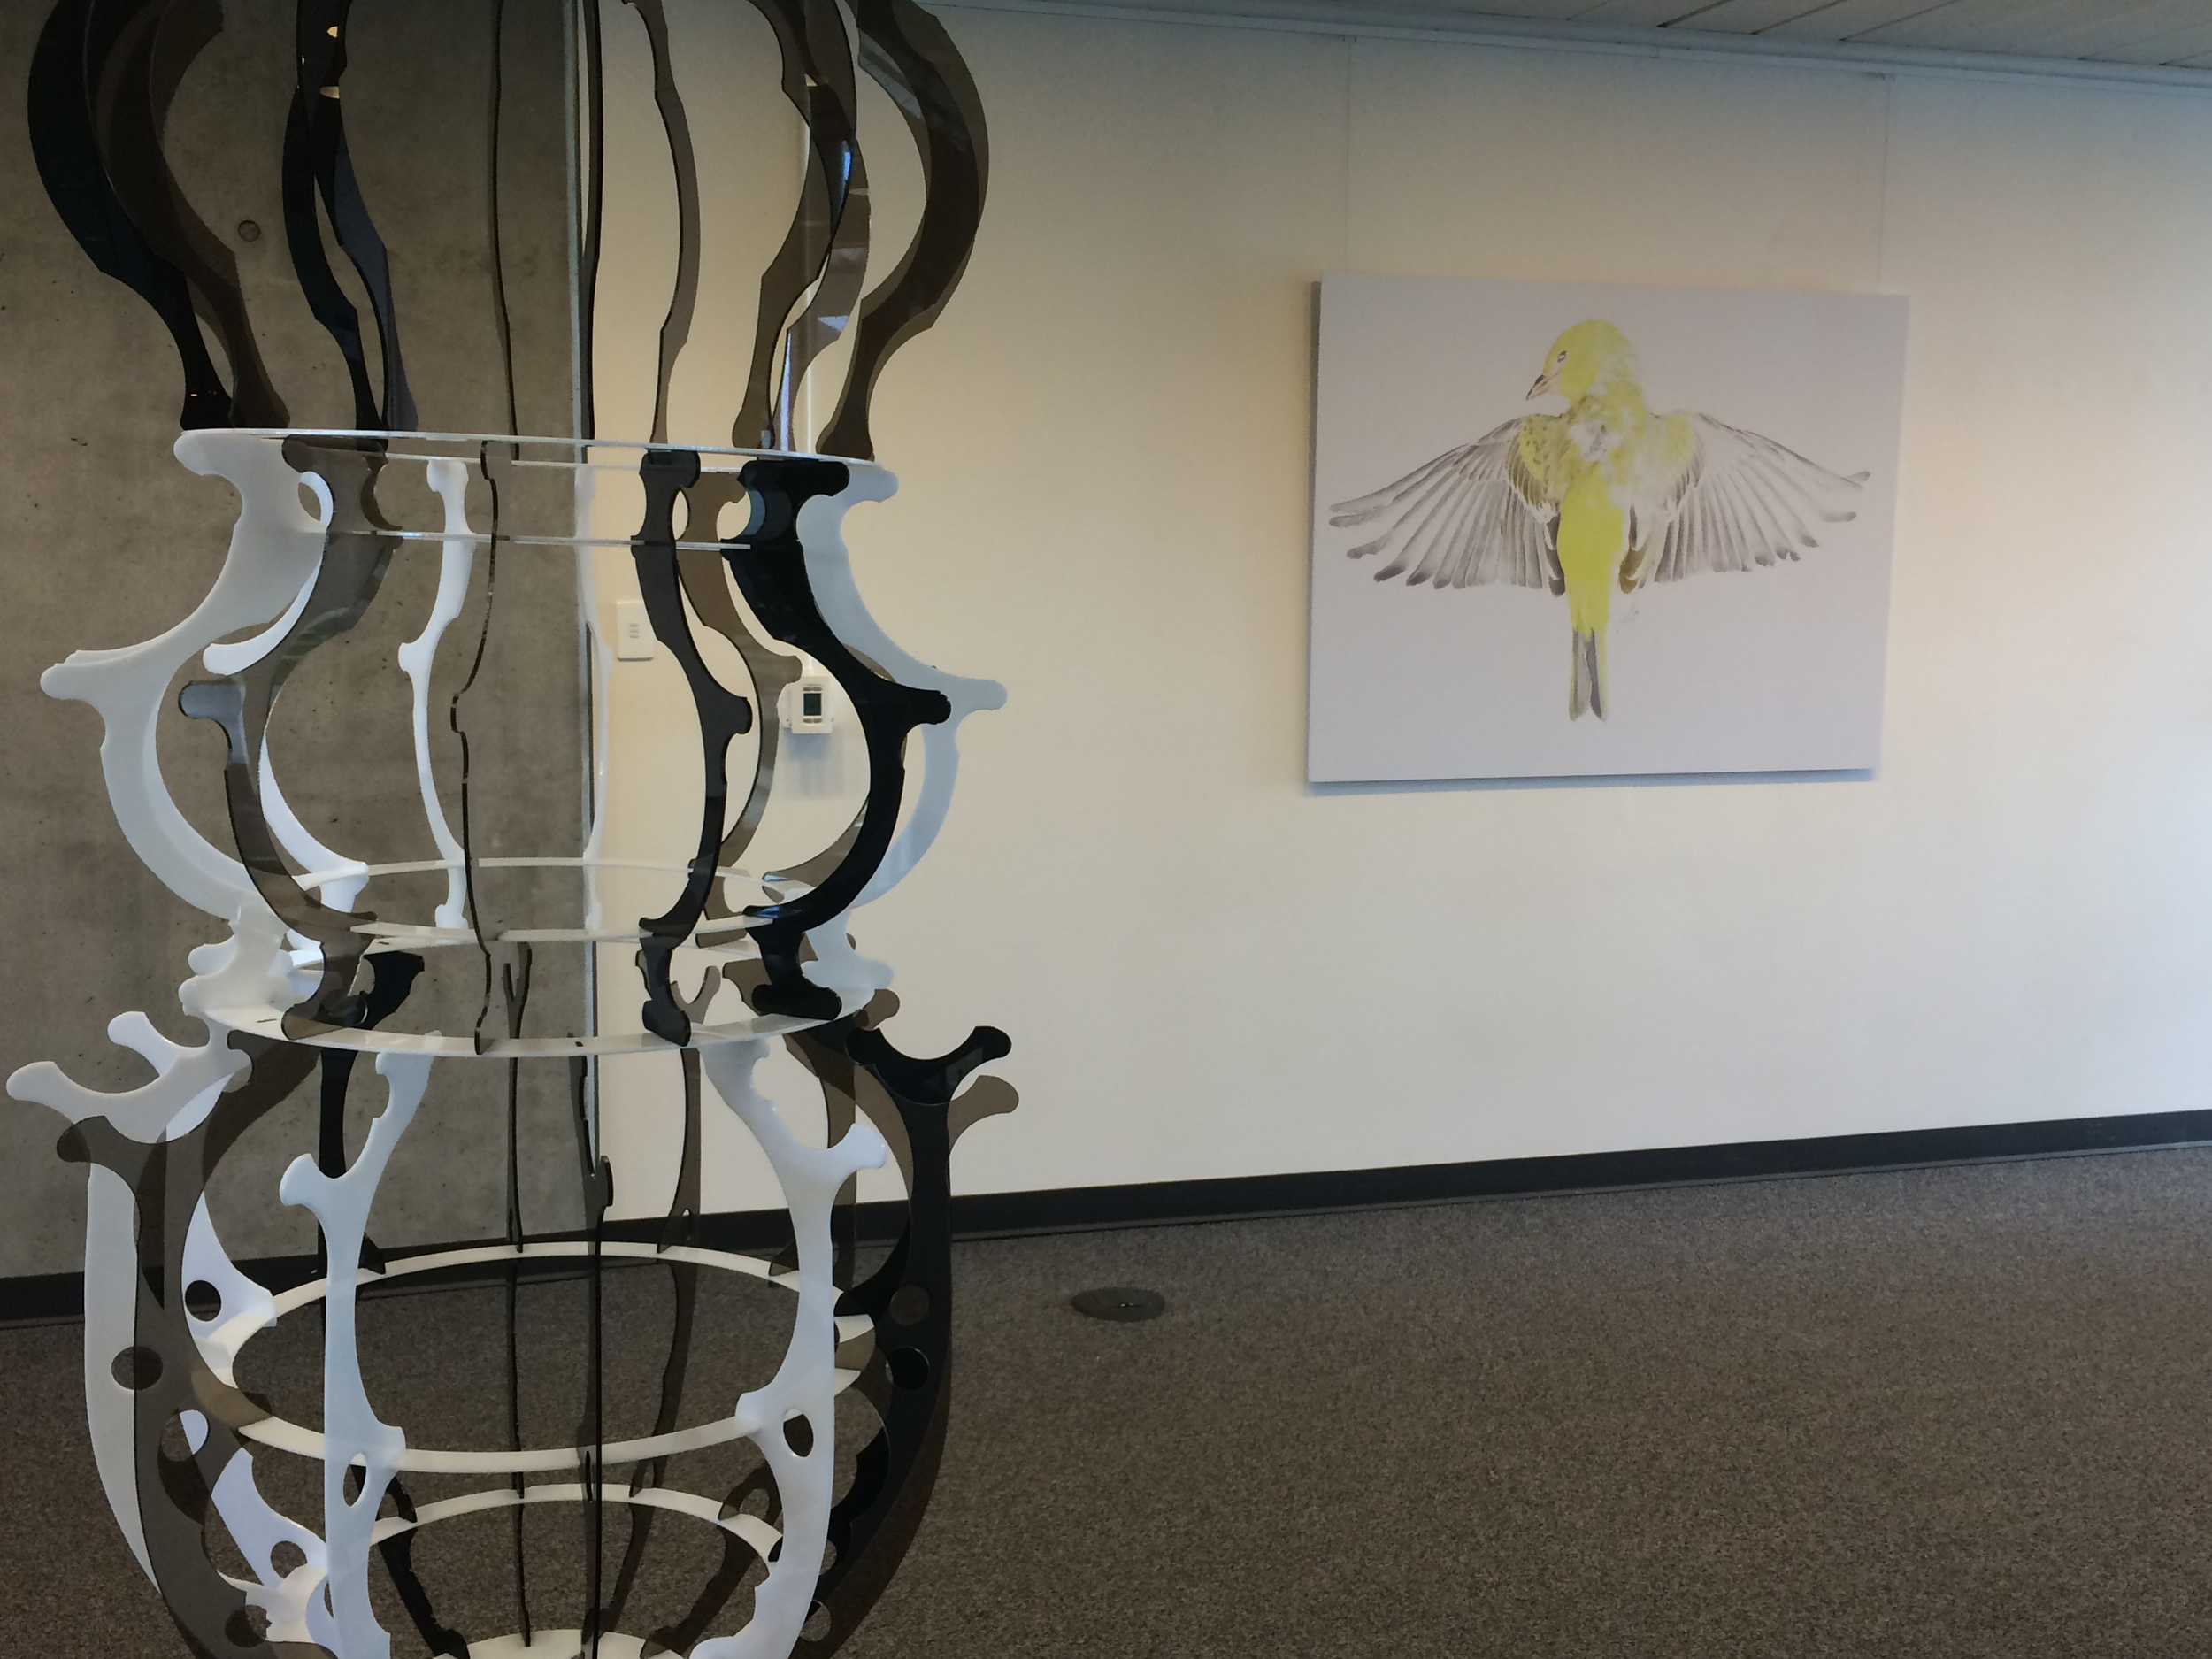 A collaboration between Matthew and Monica Furmanski.  Installed at CSU, Channel Islands  Curated by Irina D. Costache  2015